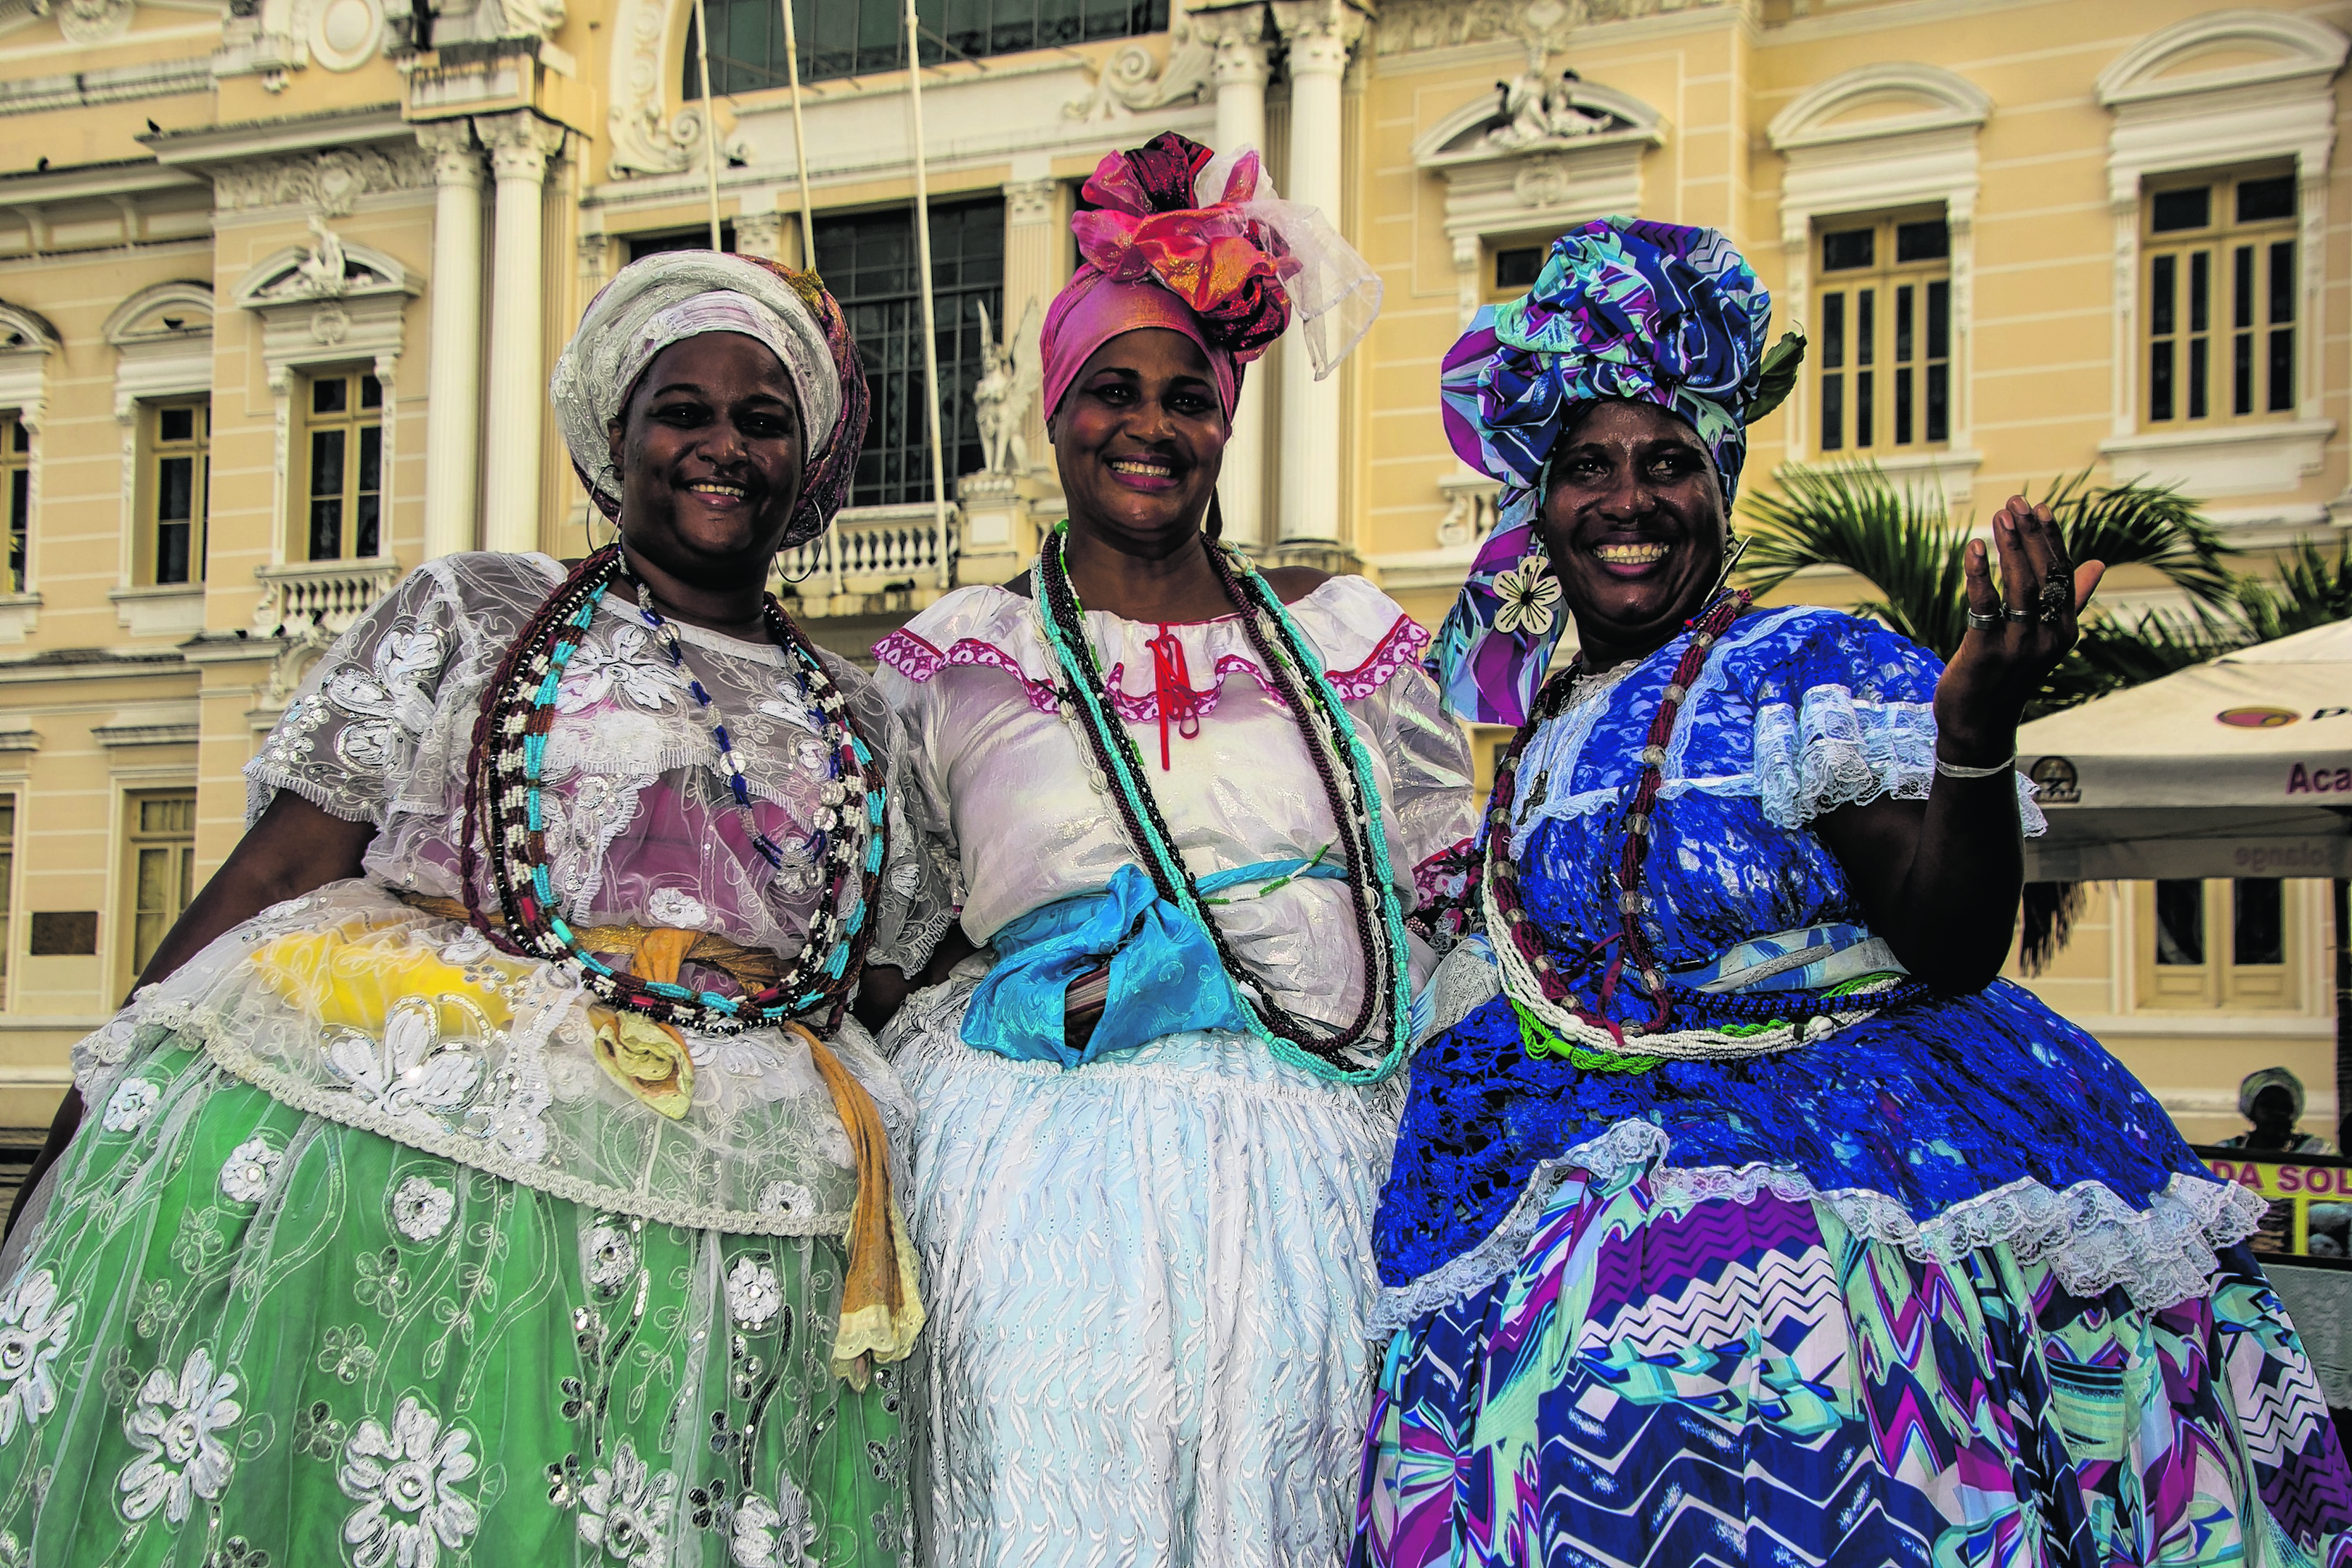 Colourful Salvador ladies in Brazil